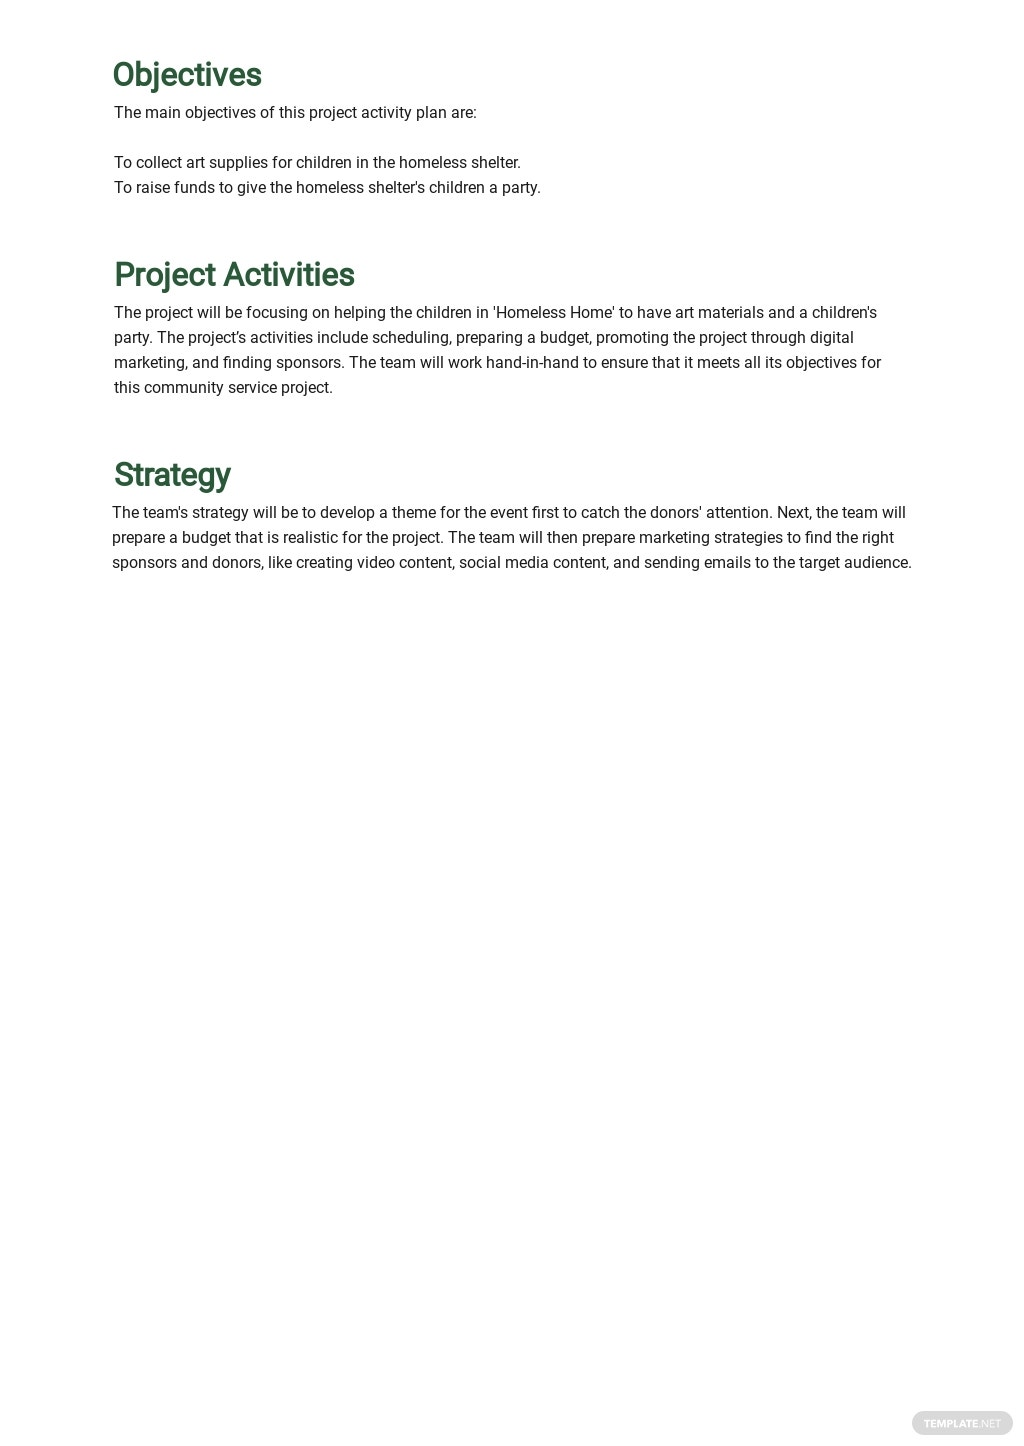 Project Activity Plan Template 1.jpe